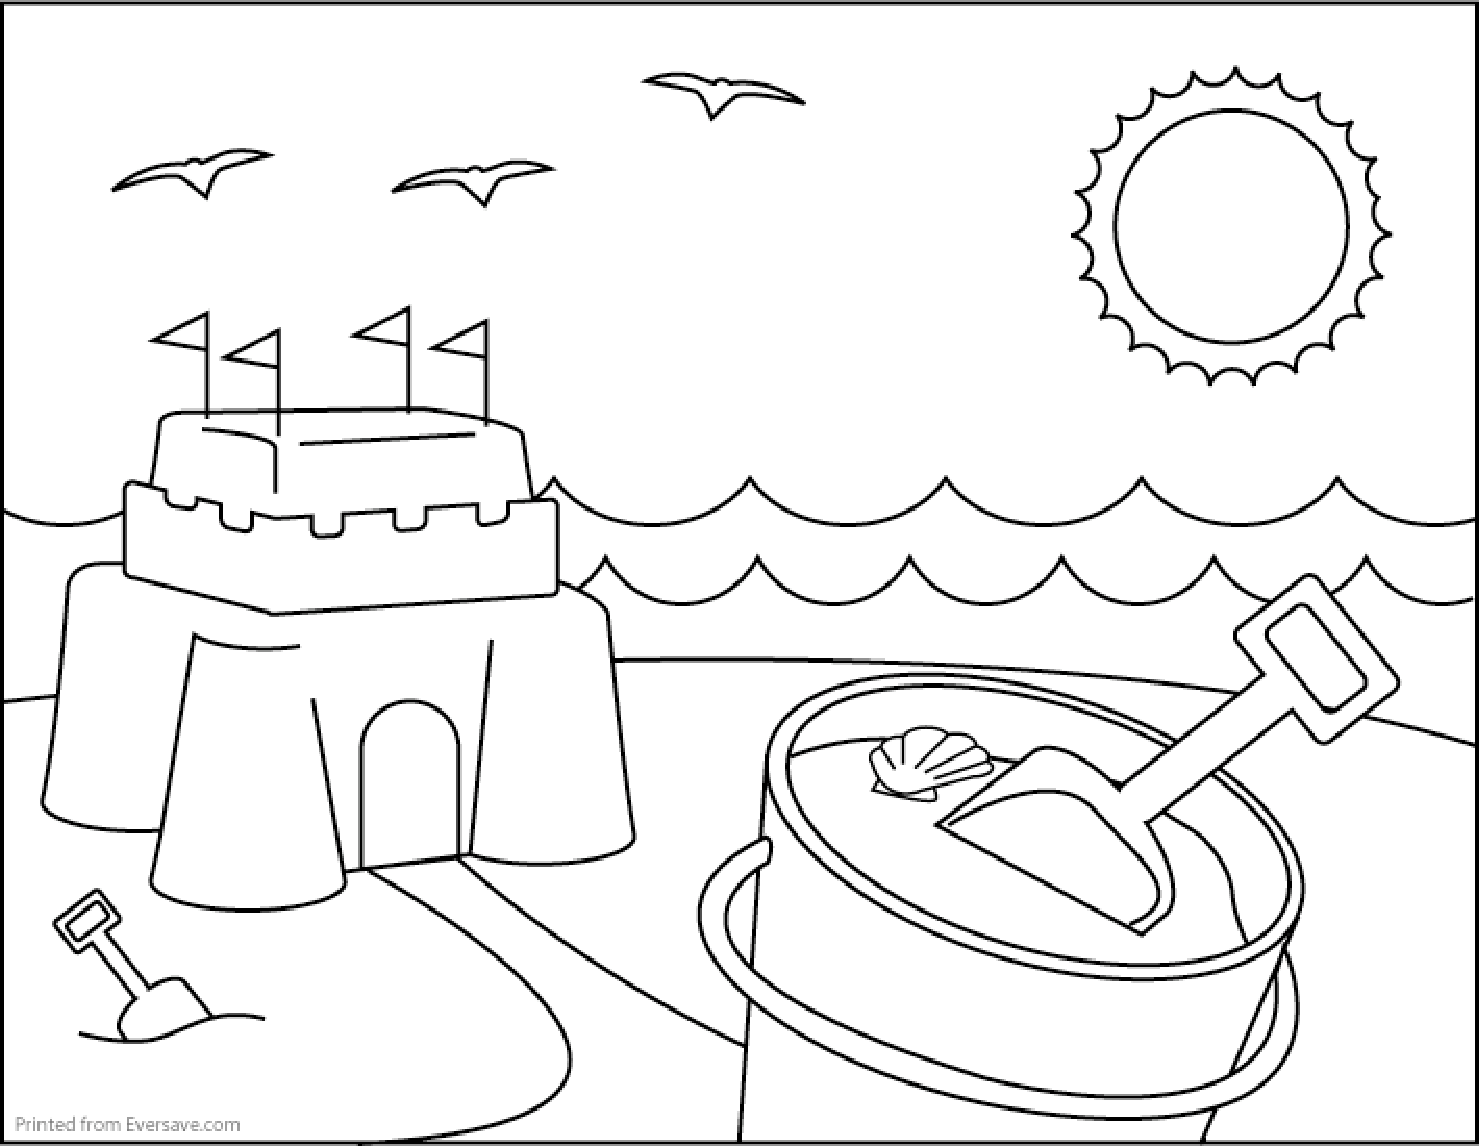 coloring pages and beach - photo#24